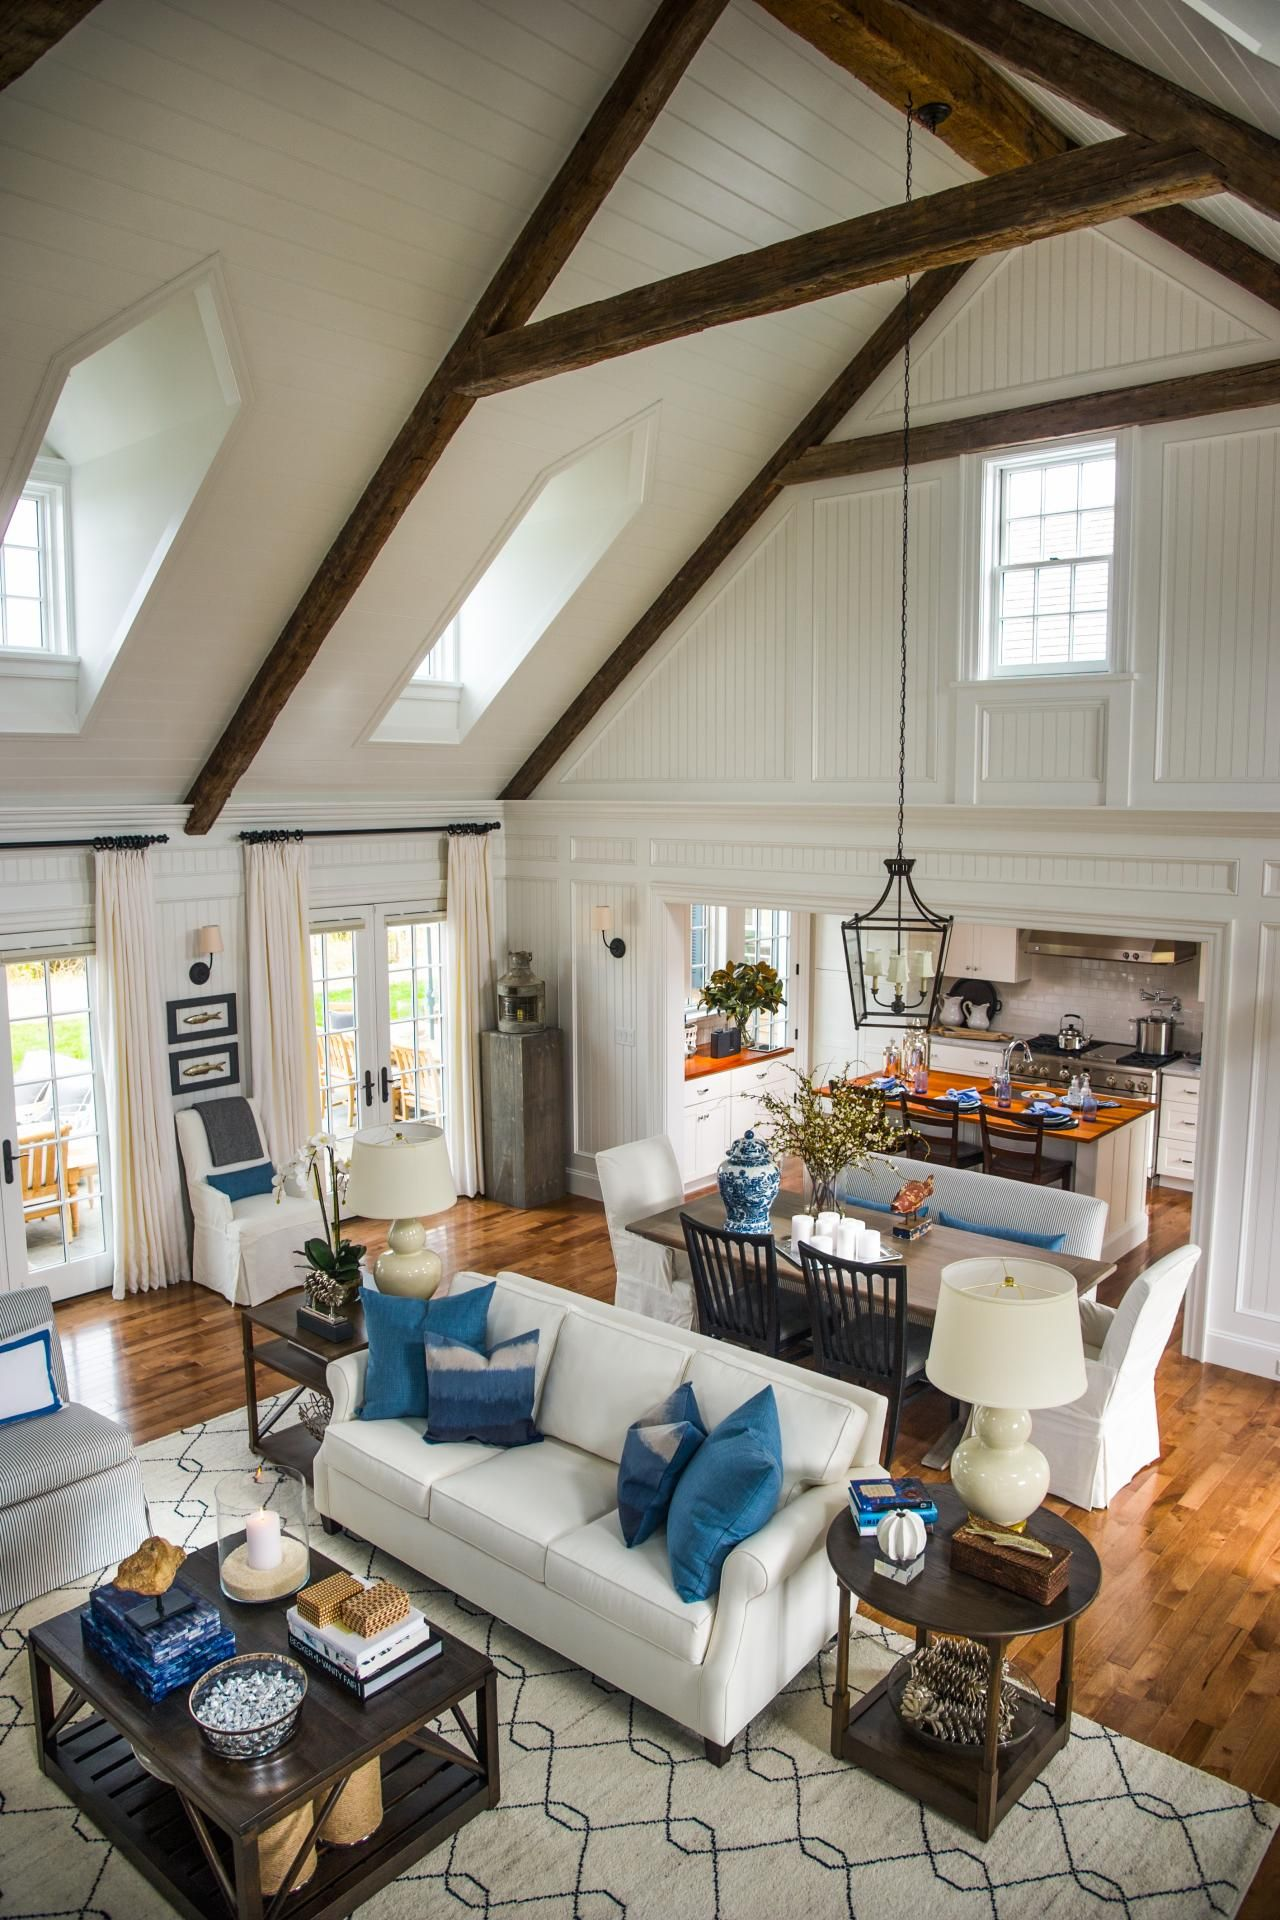 Cathedral ceiling httpwwwhgtvcomdesignhgtv dream home 2015artistic view of hgtv dream home 2015 pictures Dream Home